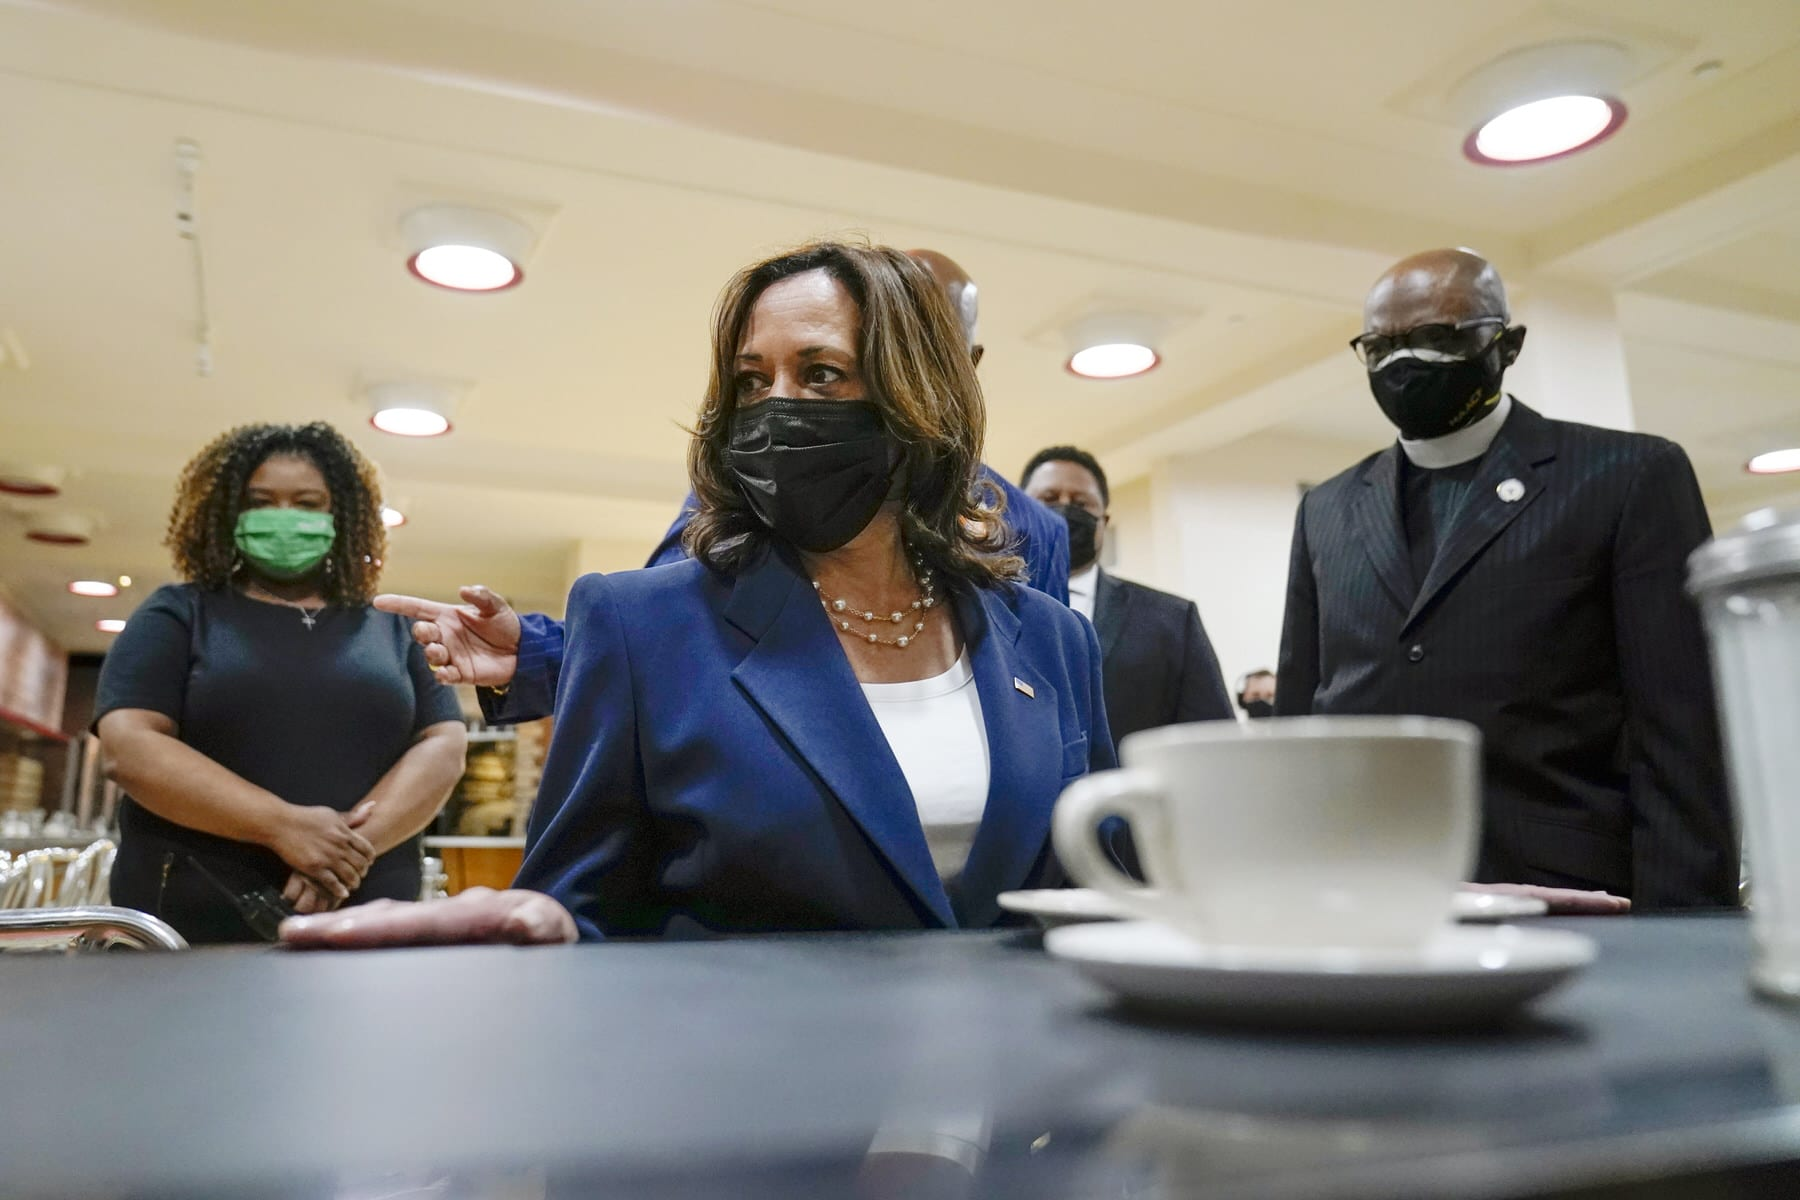 Vice President Kamala Harris sits at the lunch counter as others look on while she visits the International Civil Rights Center and Museum.